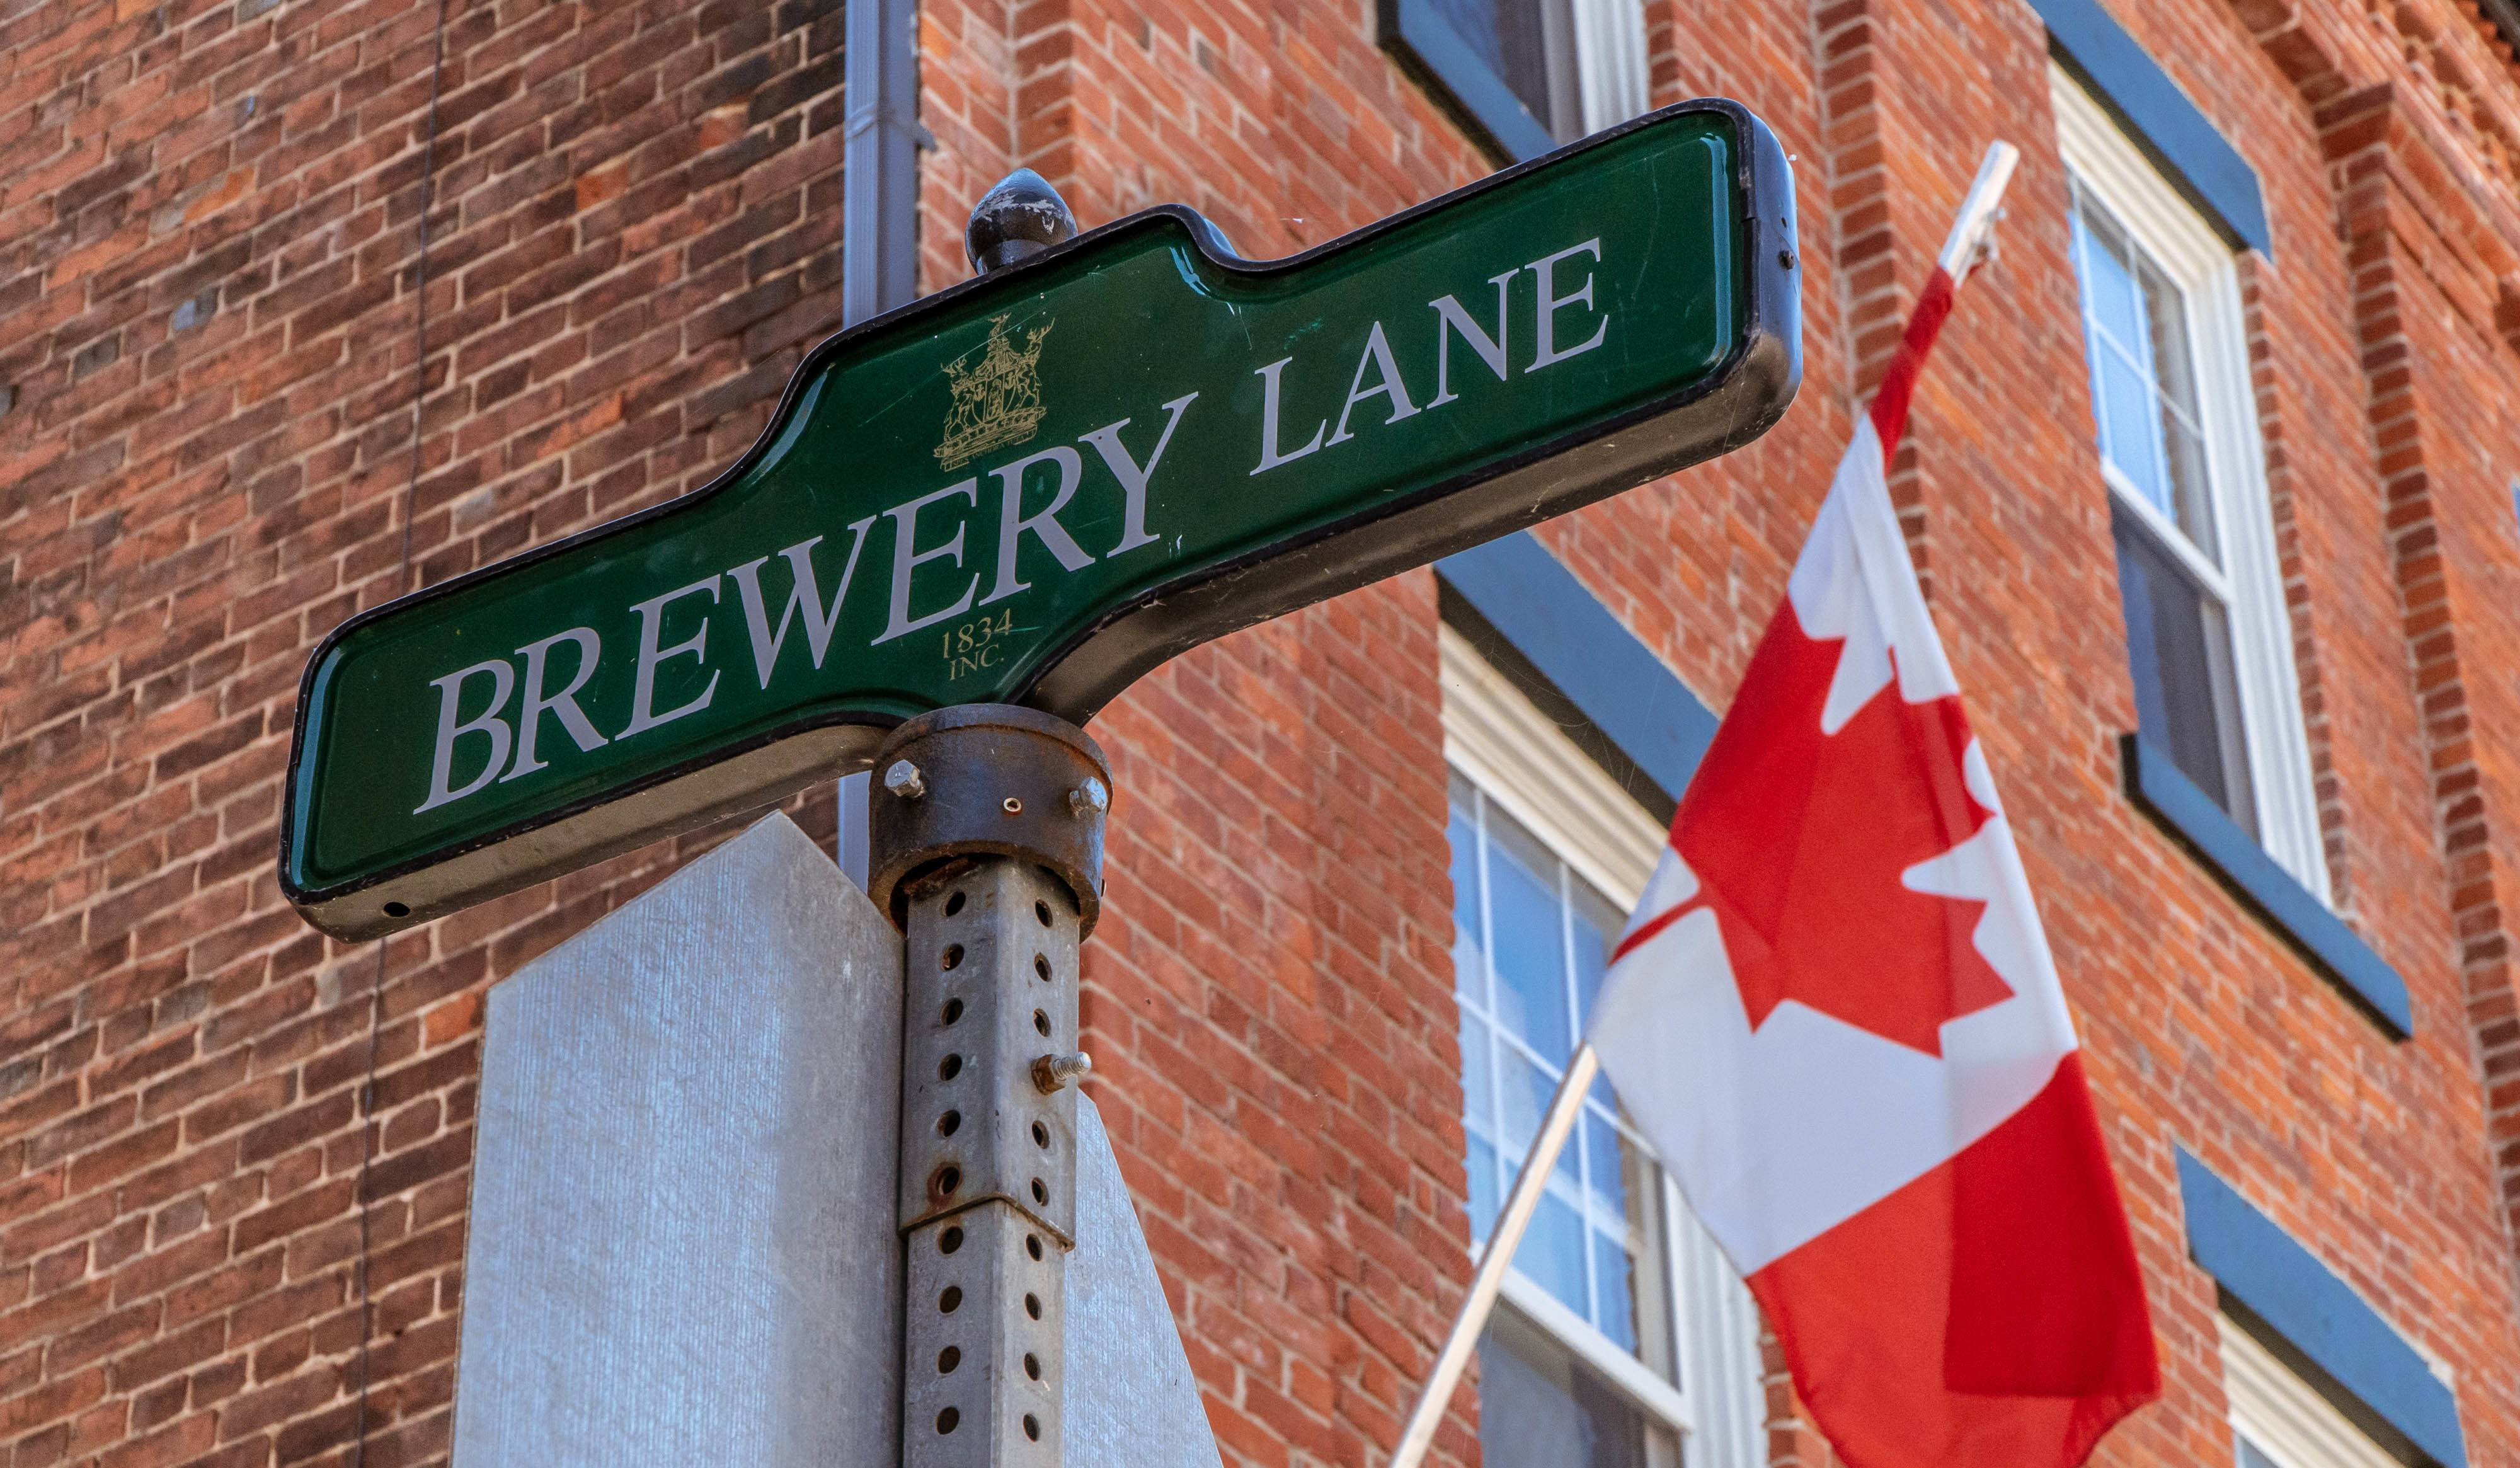 Brewery Lane in Port Hope has a story too tell. Photo by Justen Soule